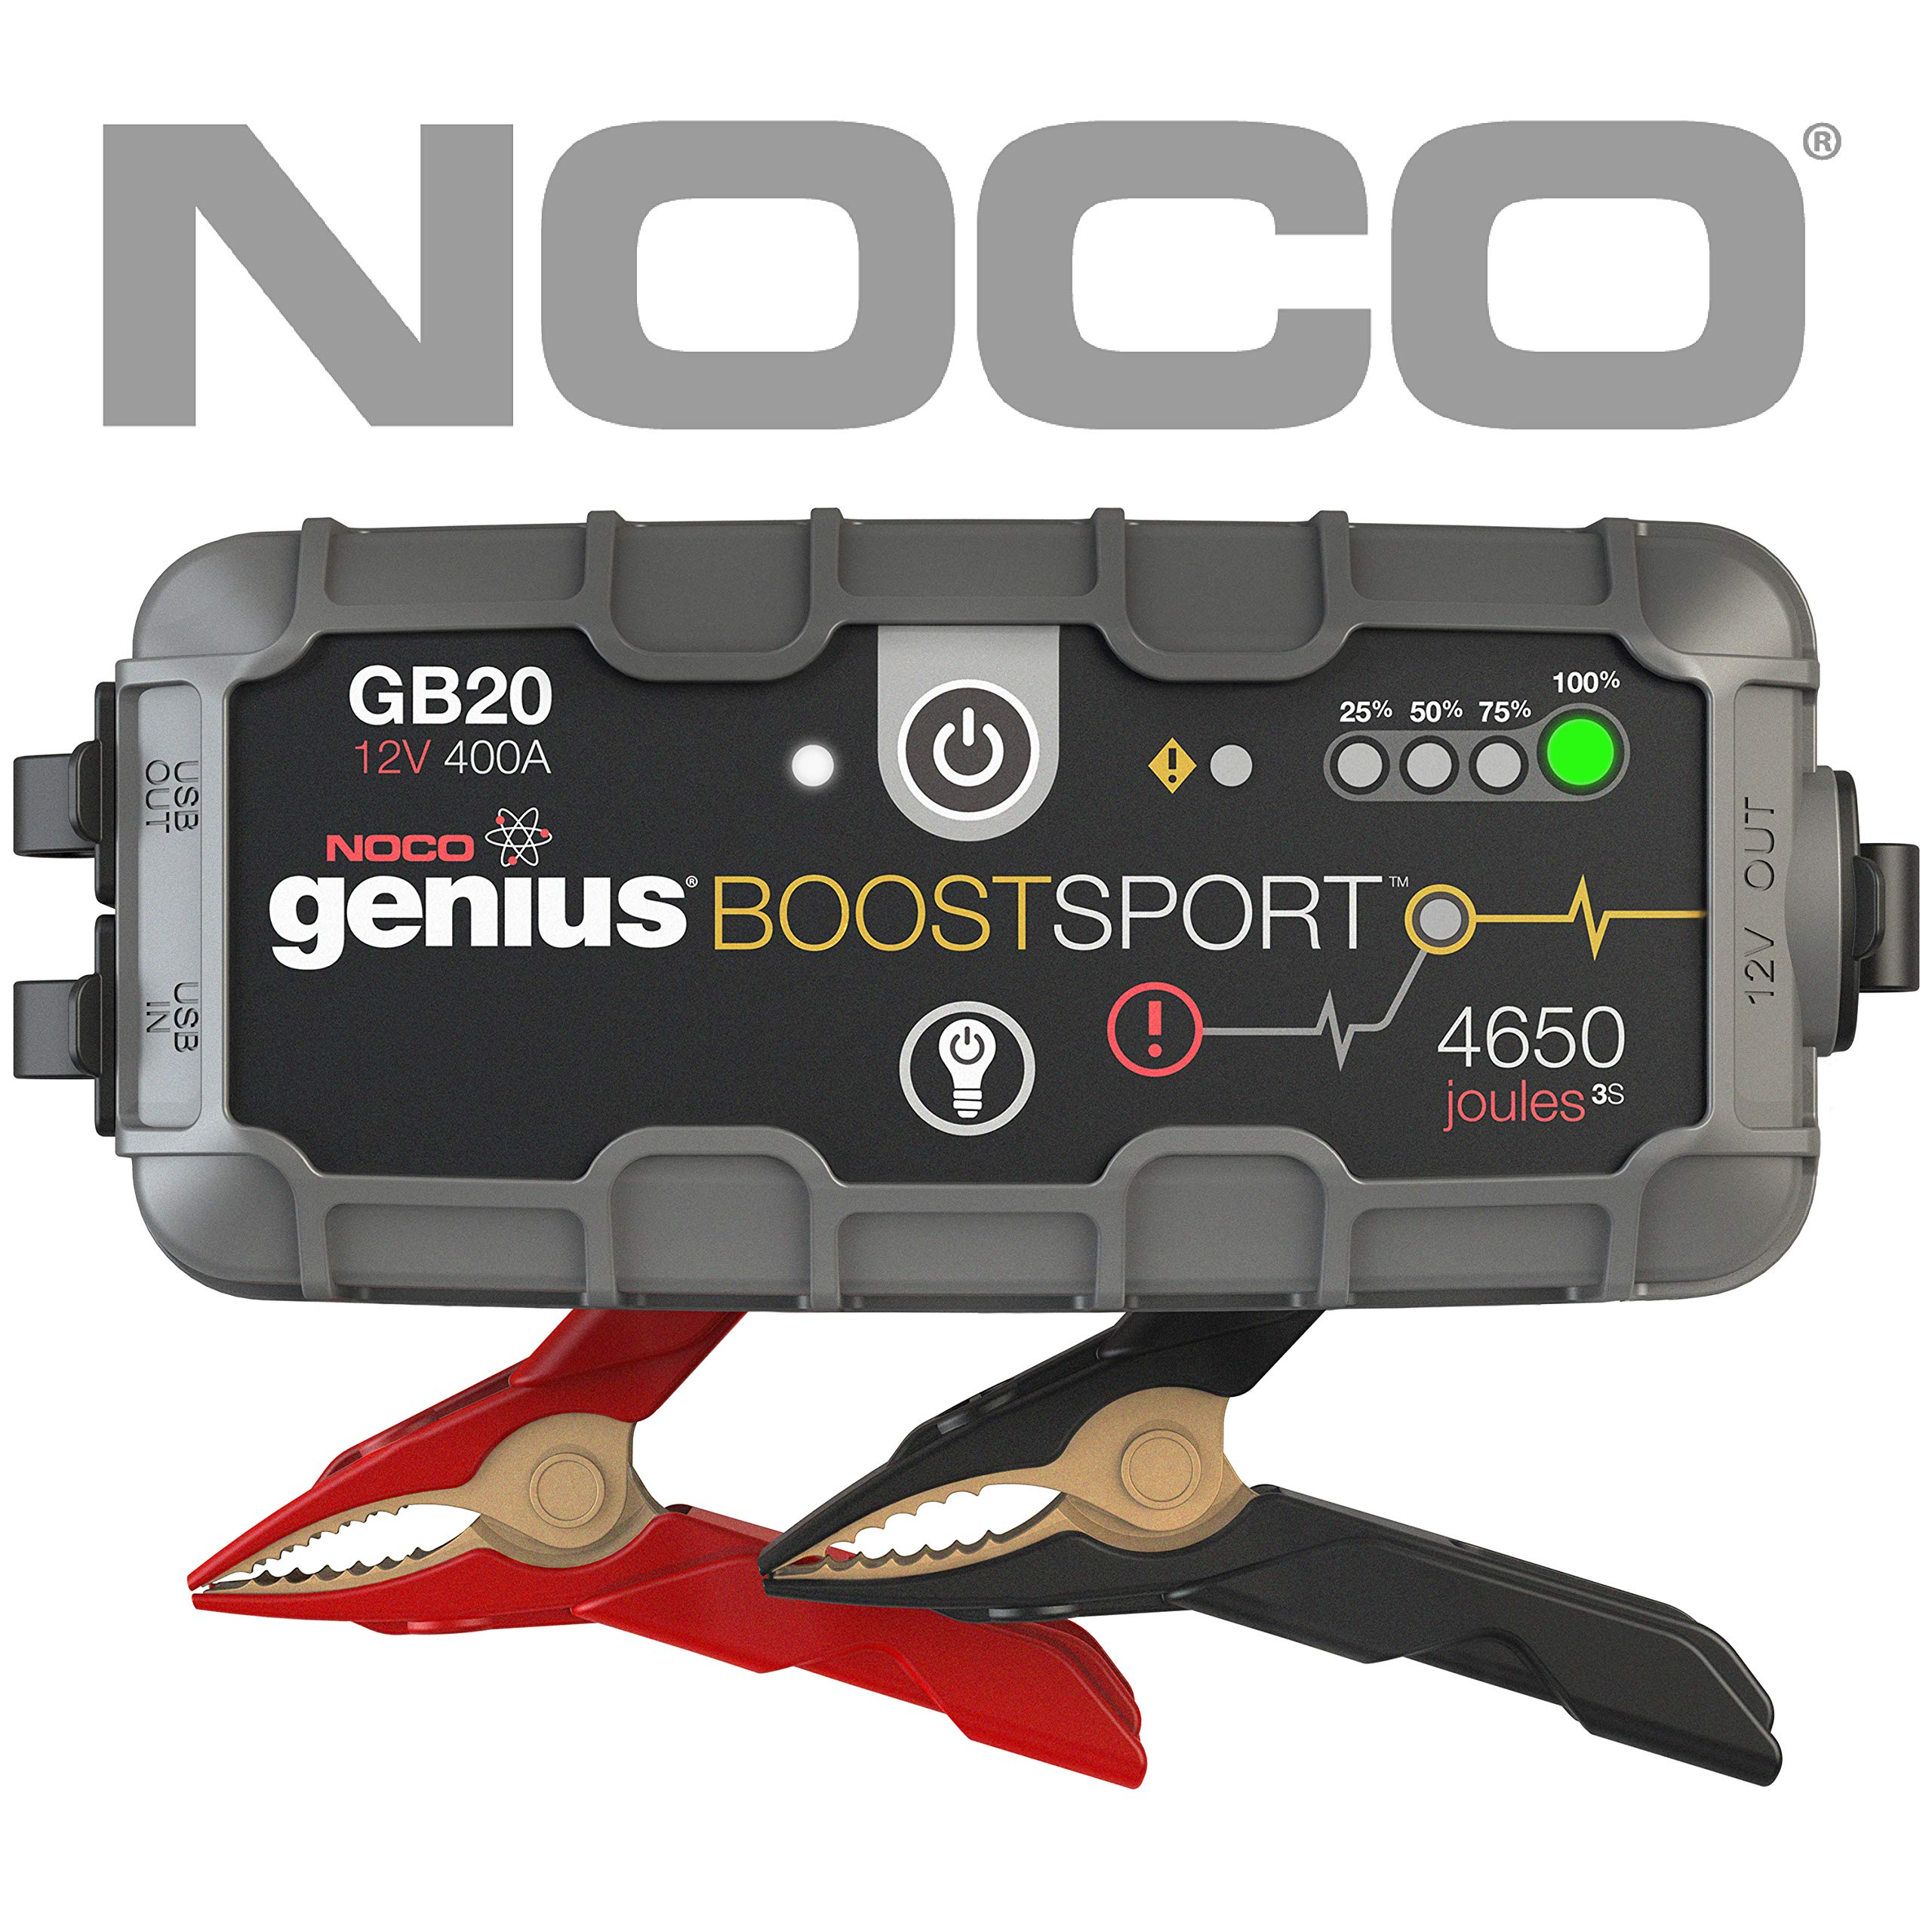 NOCO Boost Sport GB20 400 Amp 12V UltraSafe Lithium Jump Starter for up to 4L Gasoline Engines by NOCO